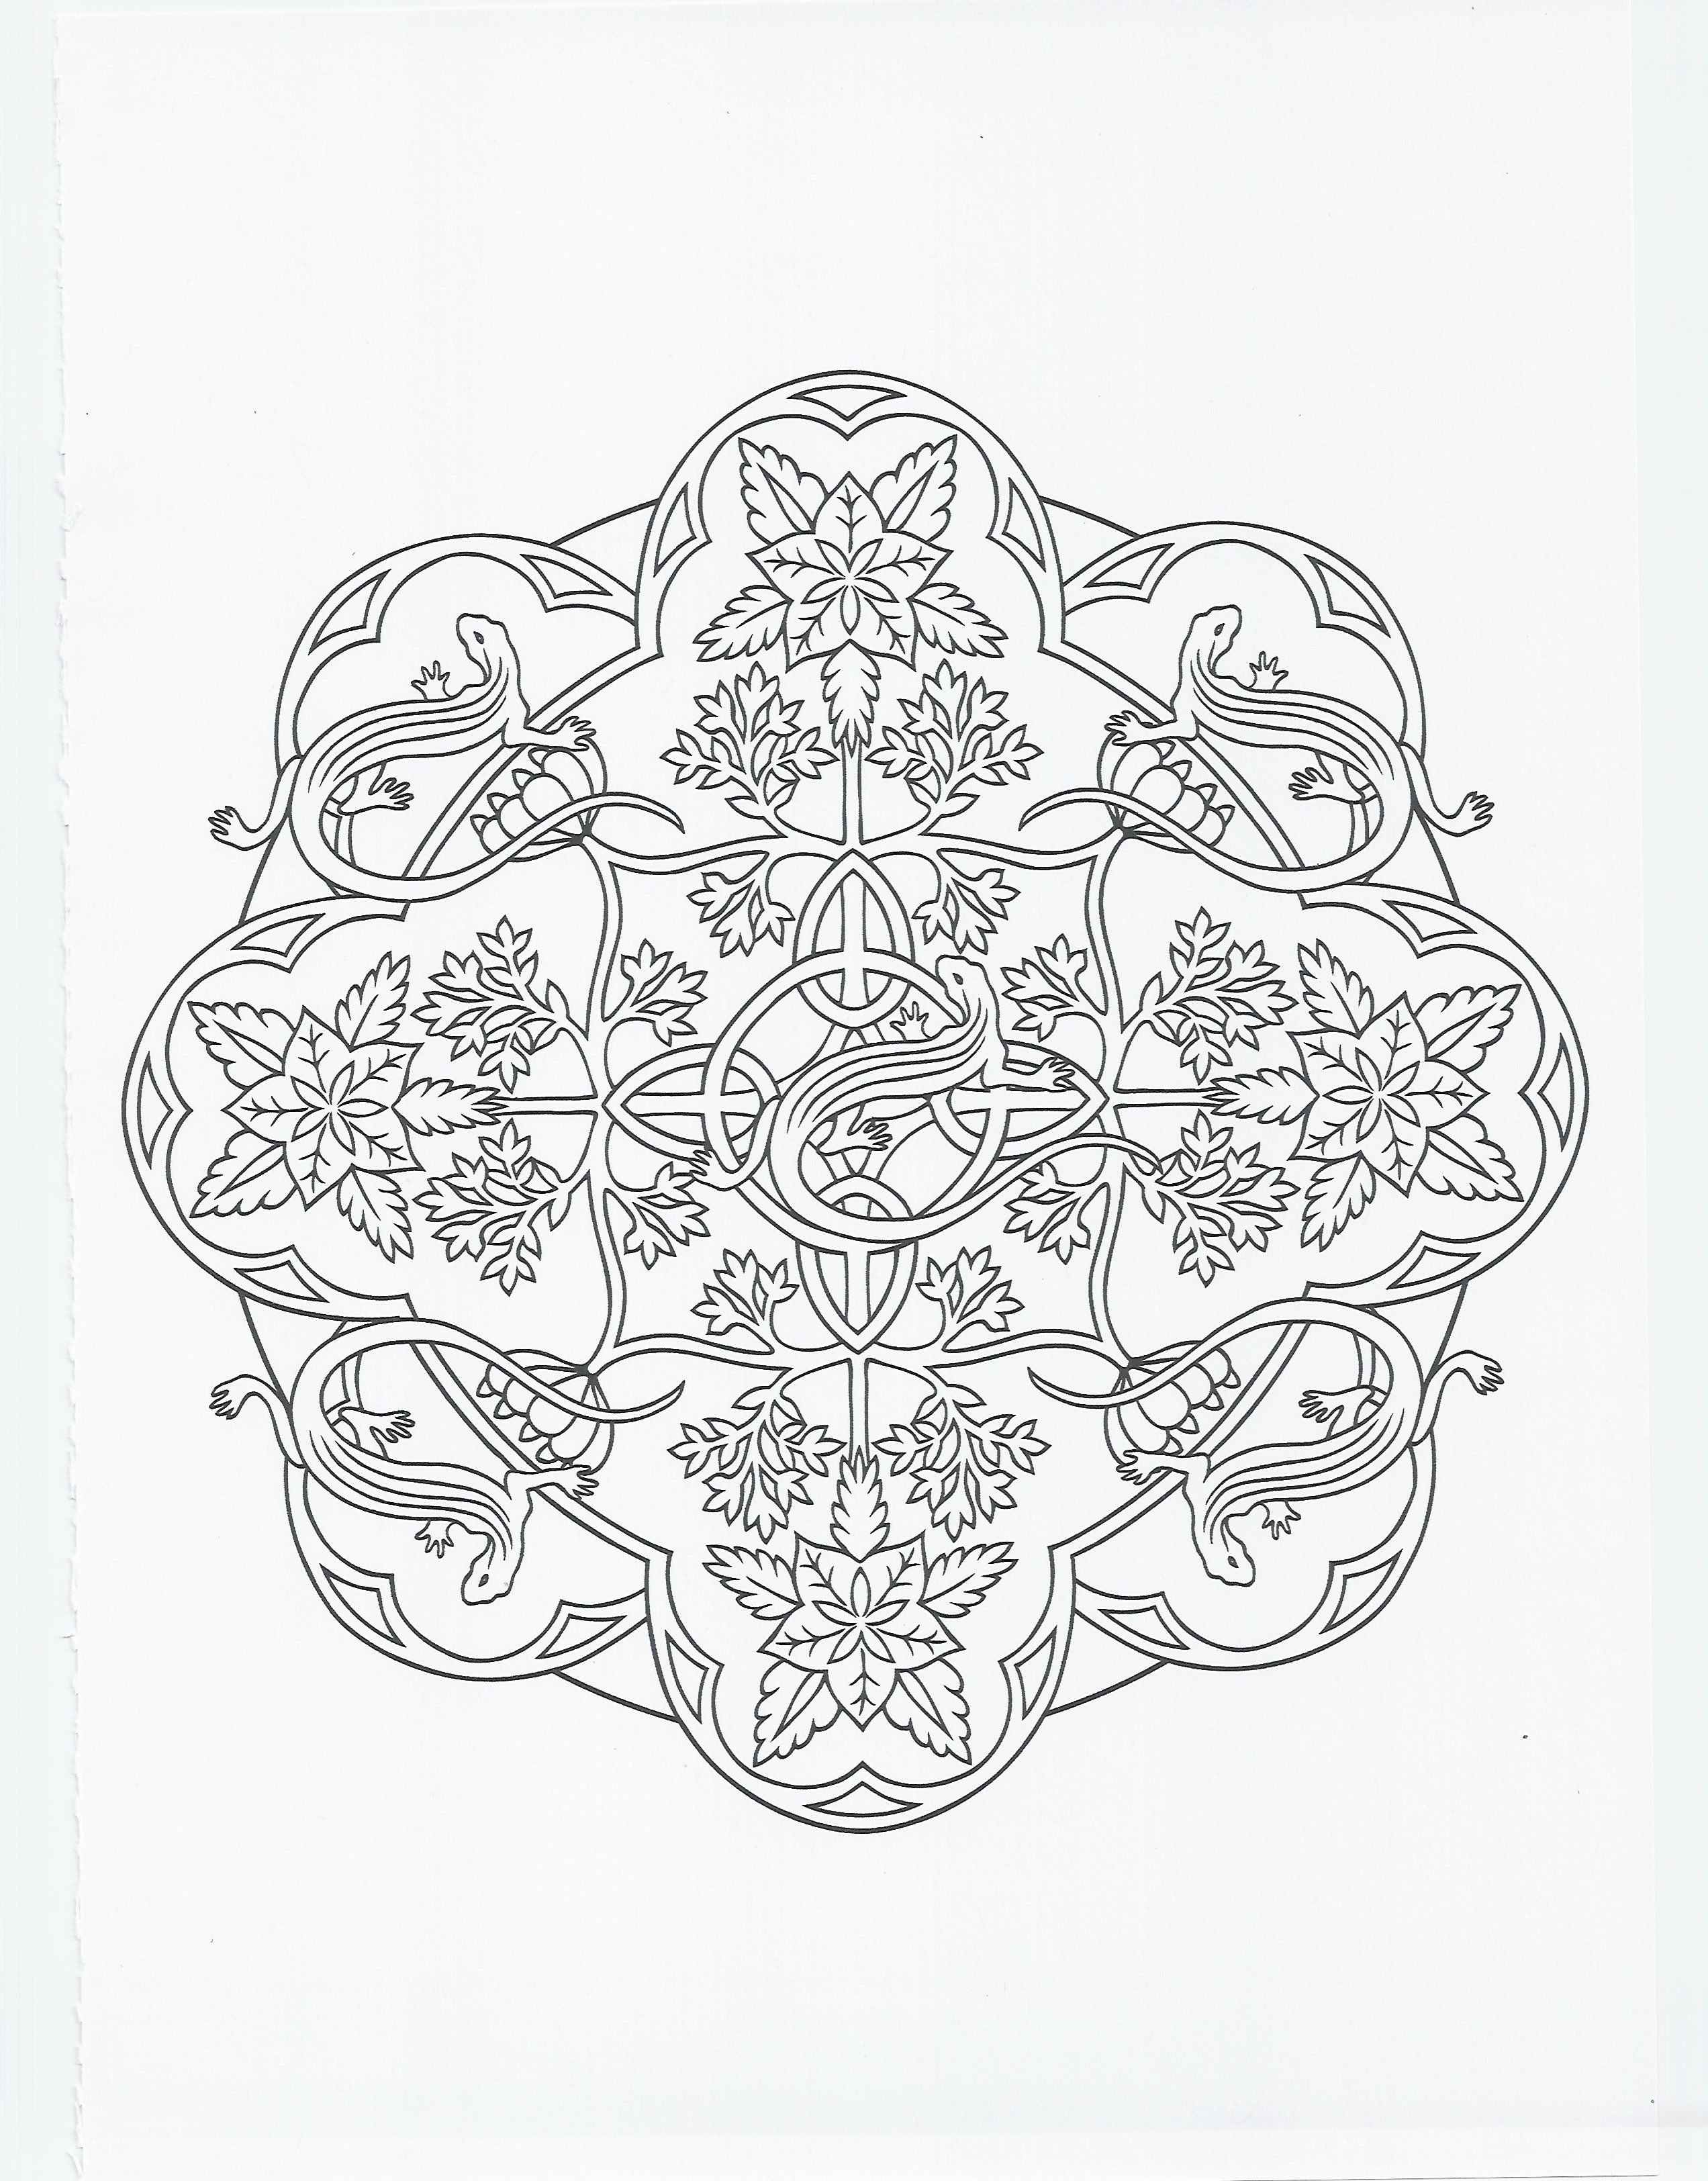 animal mandala - lizard | Coloring Pages | Coloring pages ...